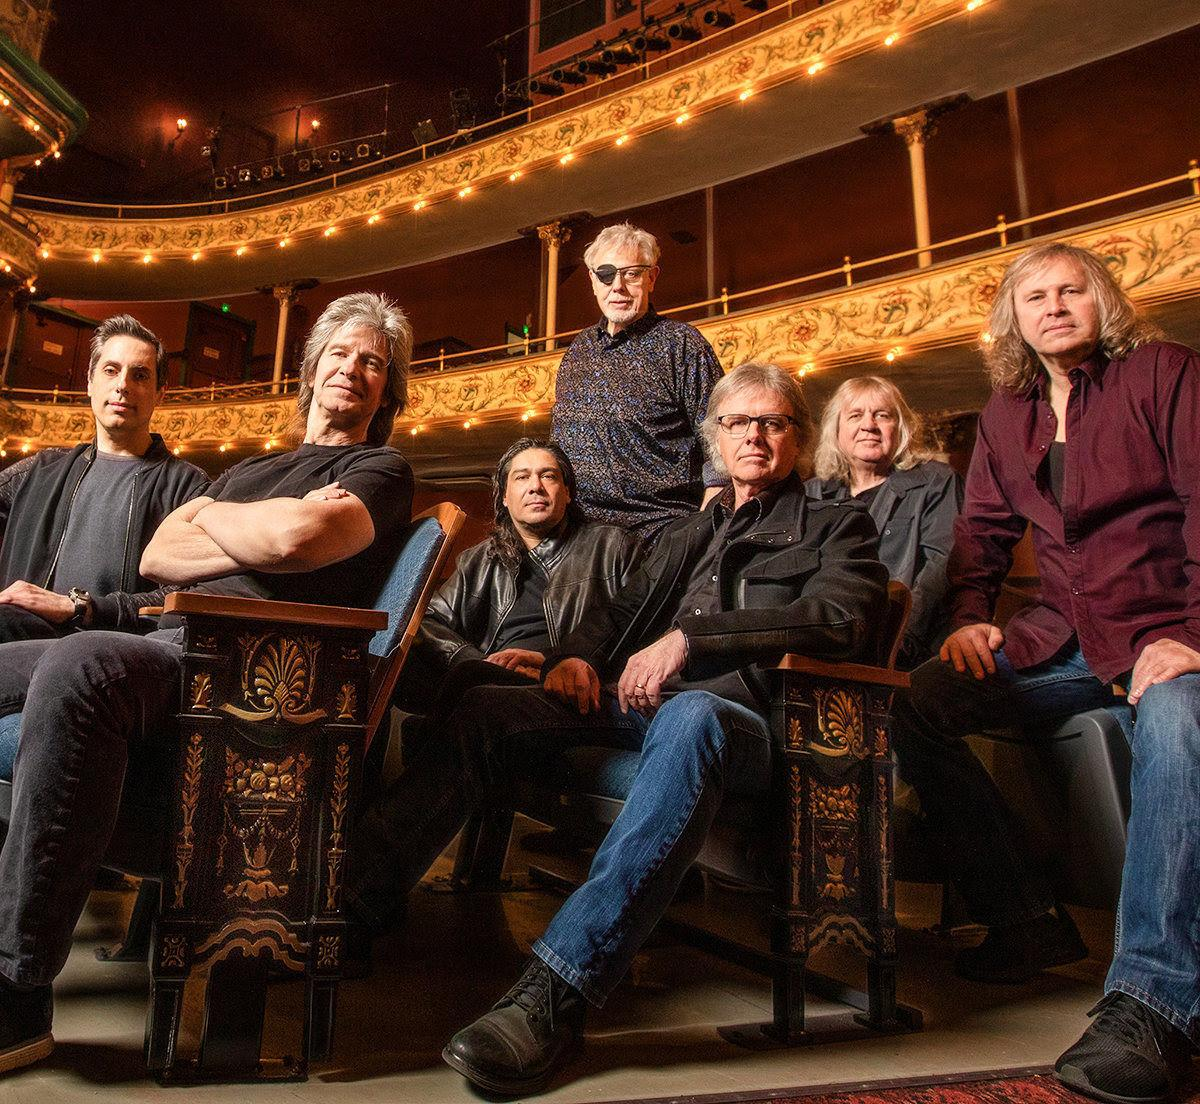 'Dust in the wind' hitmakers kick up the dust on new tour